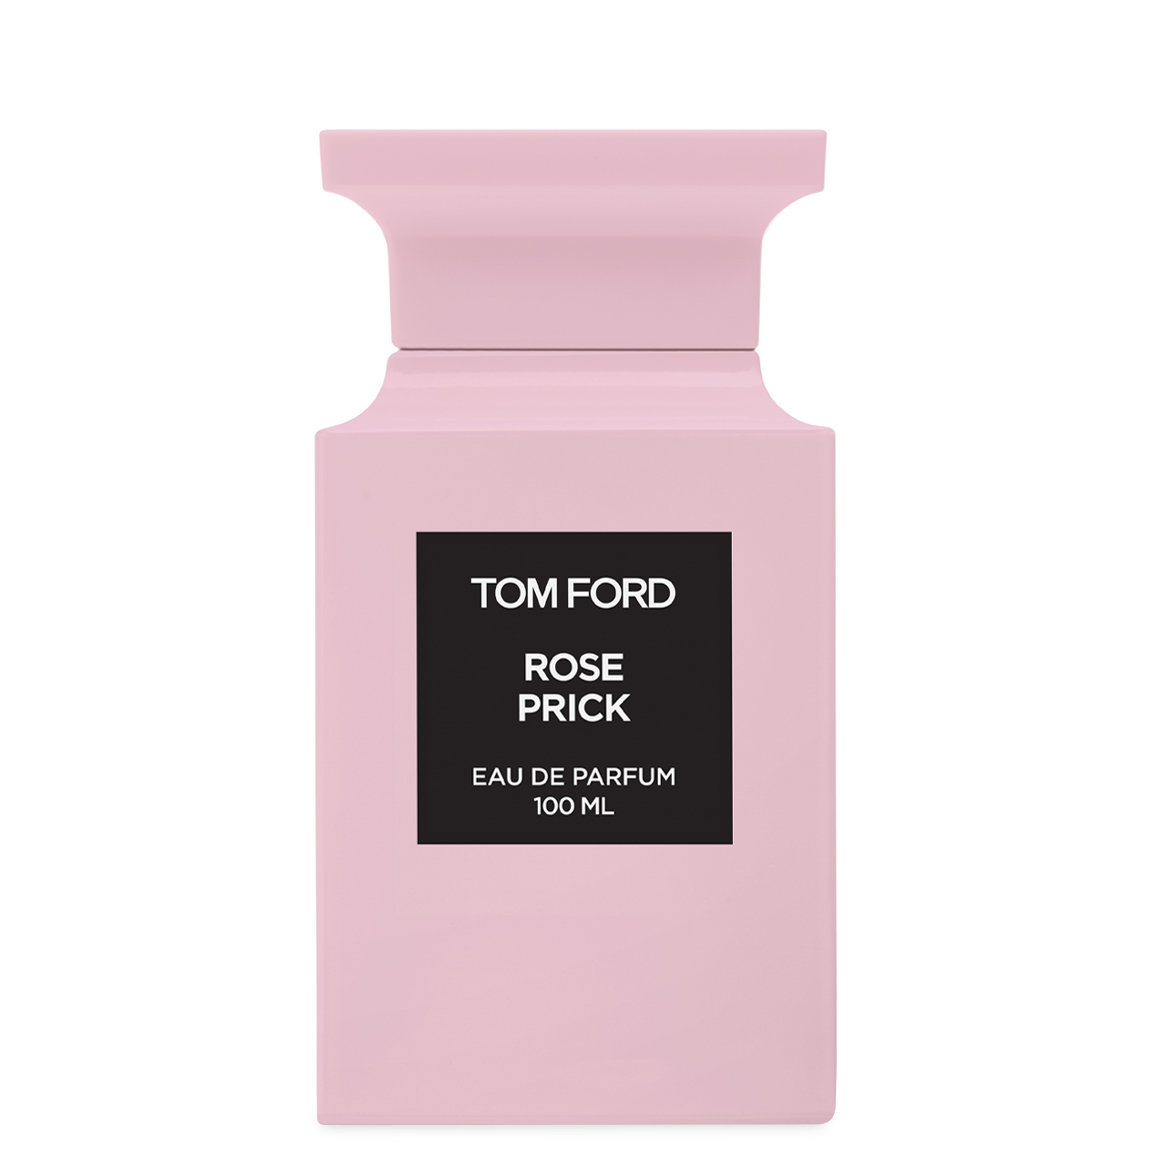 TOM FORD Rose Prick 100 ml alternative view 1 - product swatch.